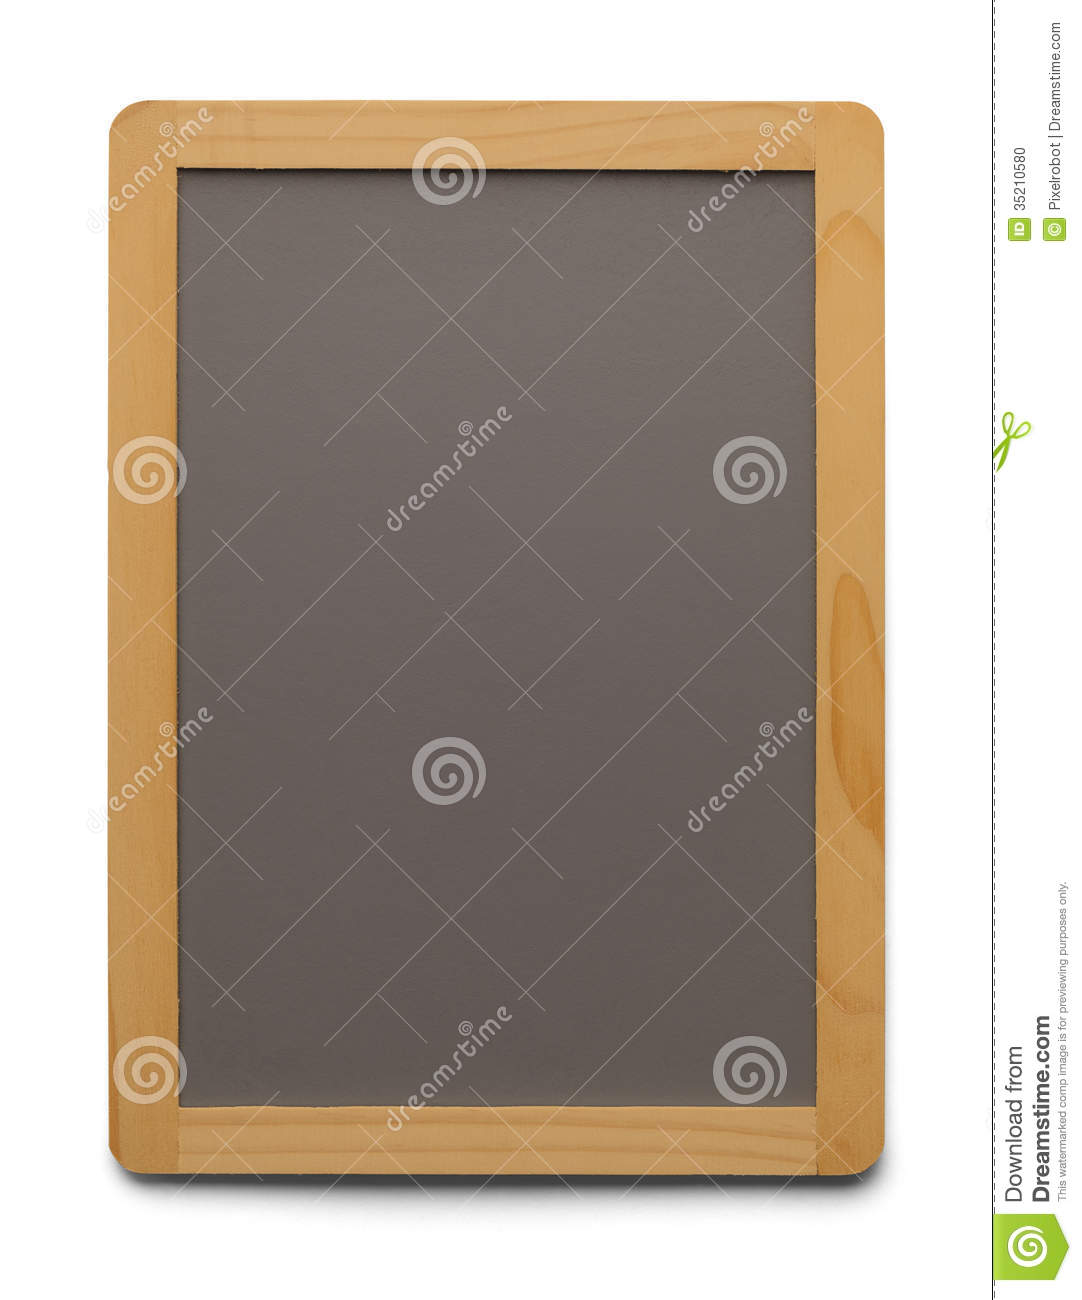 Blank Menu Board stock photo. Image of grey, five, black ...